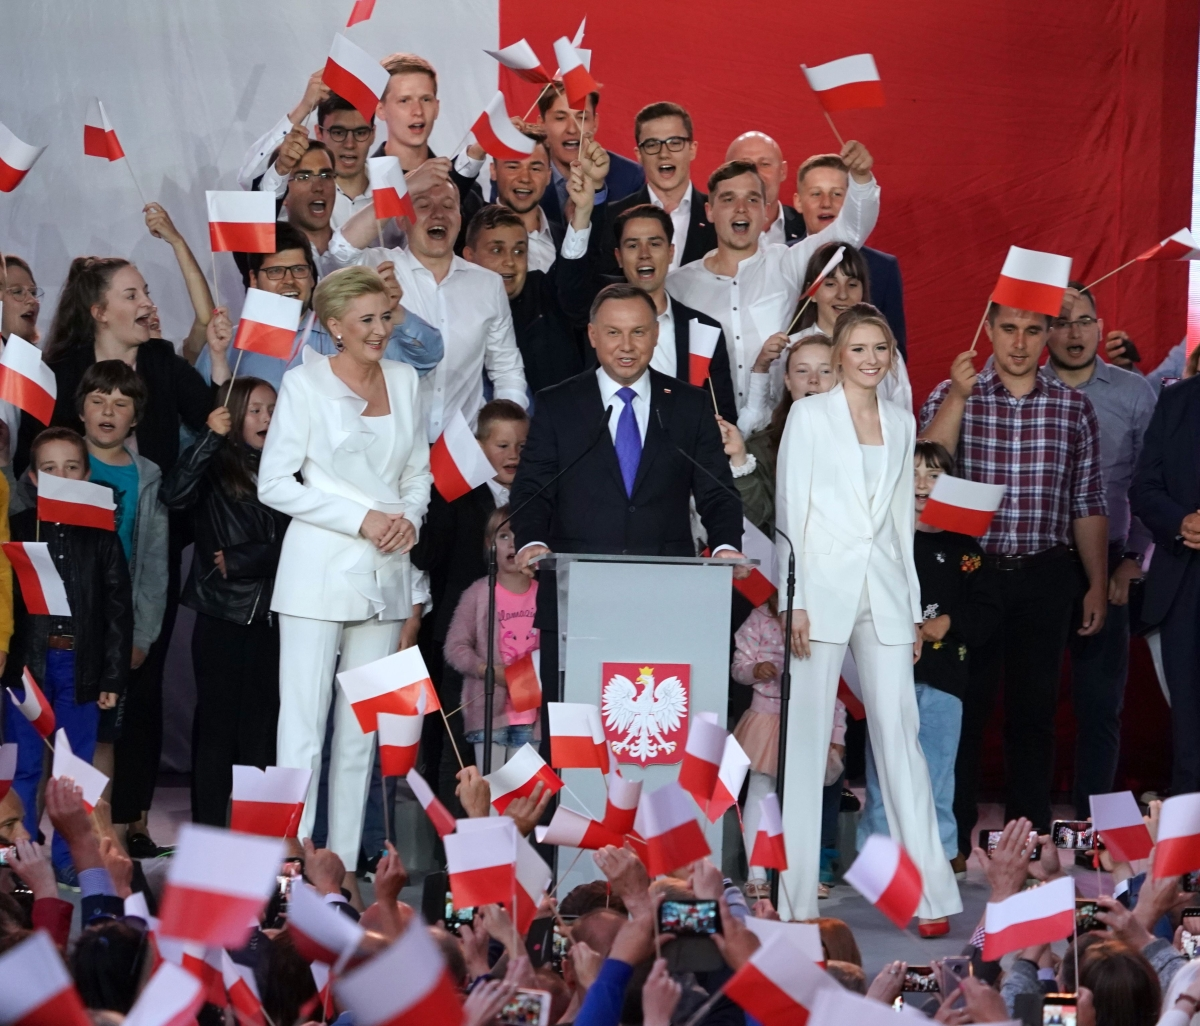 Polish President wins second term